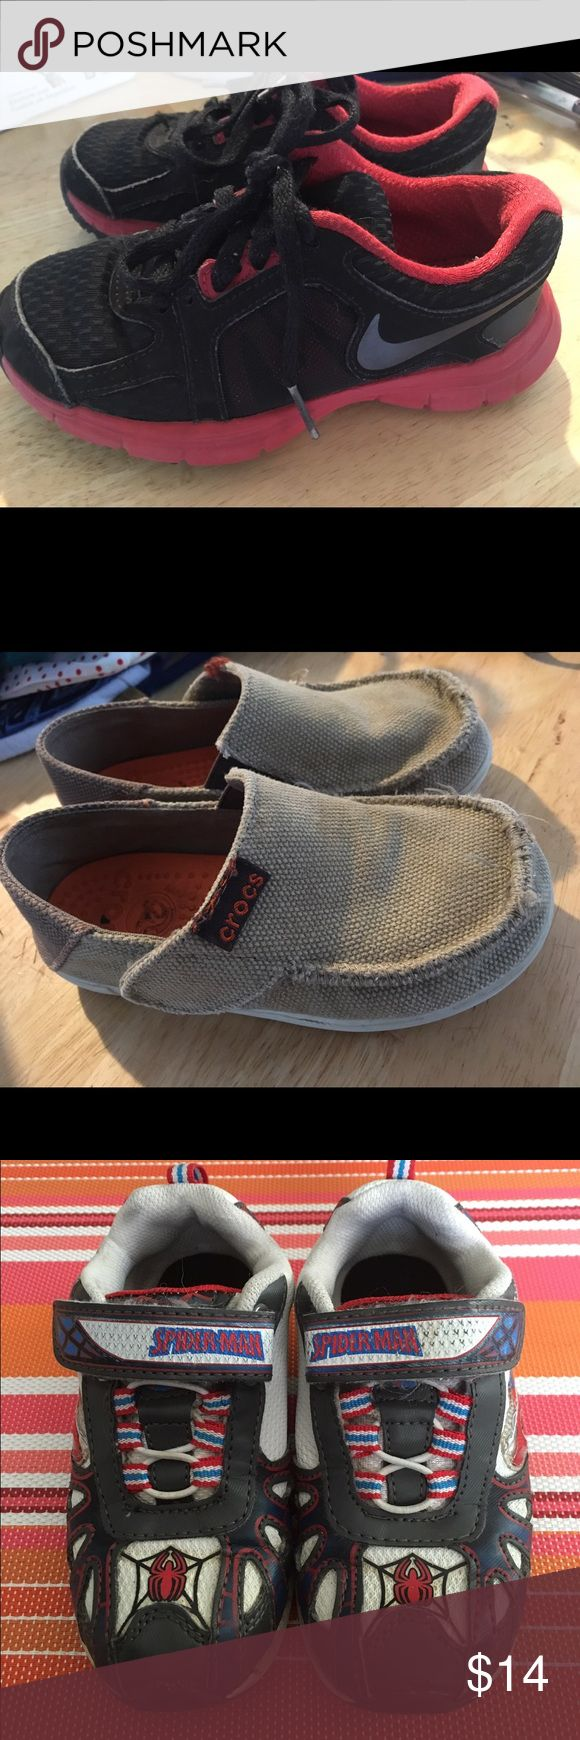 4 pairs of toddler boy shoes, size 10 & 10.5! 4 pairs of toddler boy shoes, size 10 & 10.5. Brands include Nike, Crocs, Stride Rite(Star Wars) and Buster Brown(Spider-Man). These are in good play condition, still have life left in them! Great for the playground, daycare or romping around outside. Price is for all 4 pairs! 20% off bundles of 2 more more items through 4/30/17! Nike Shoes Sneakers